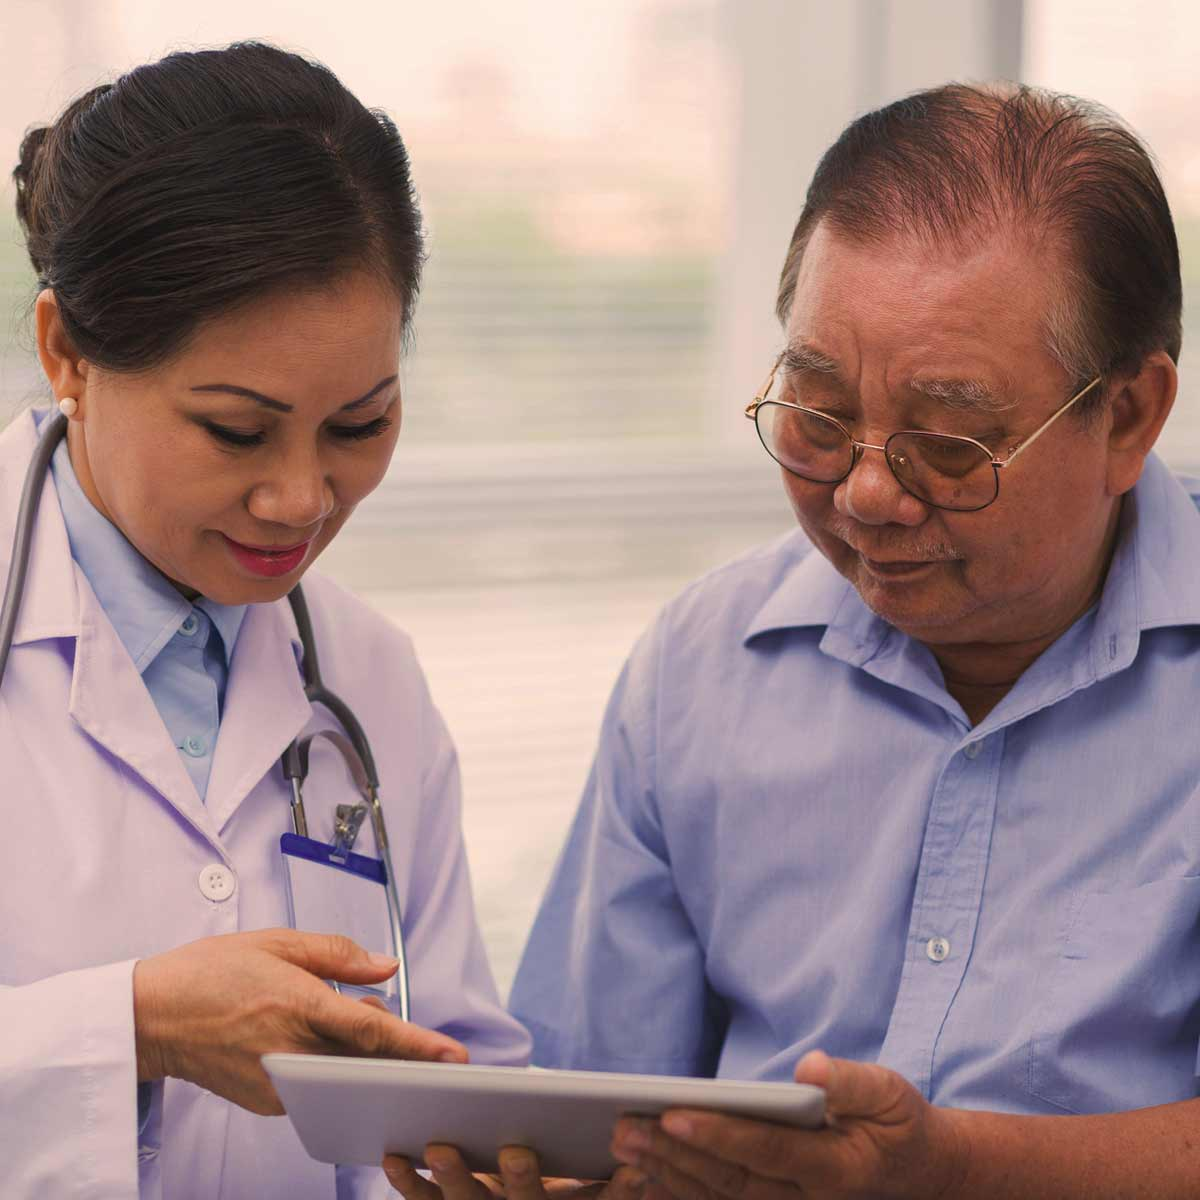 Oncologist doctor talking with patient